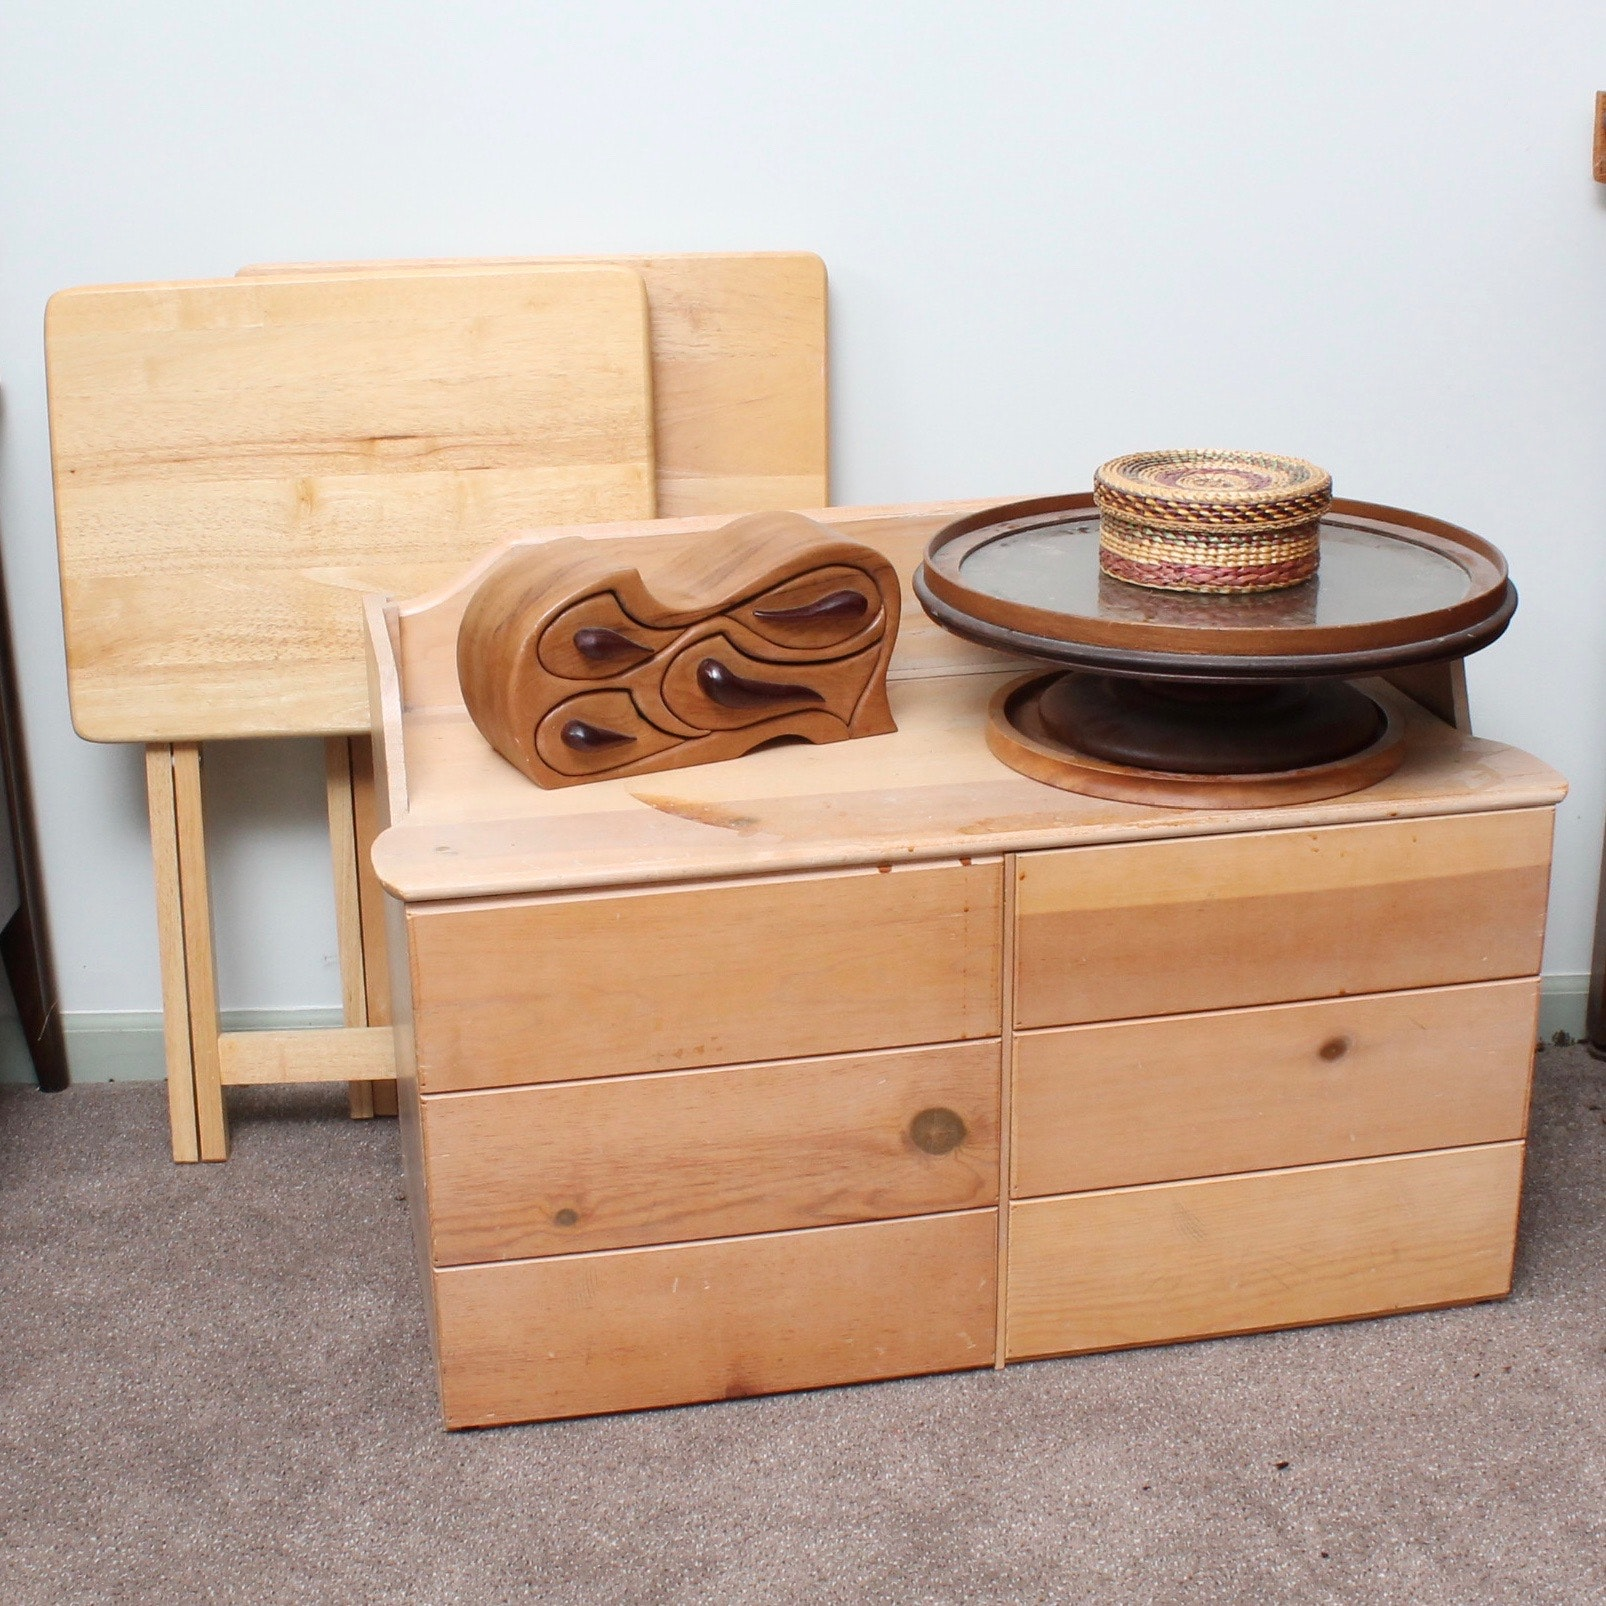 Wooden Furniture and Decor